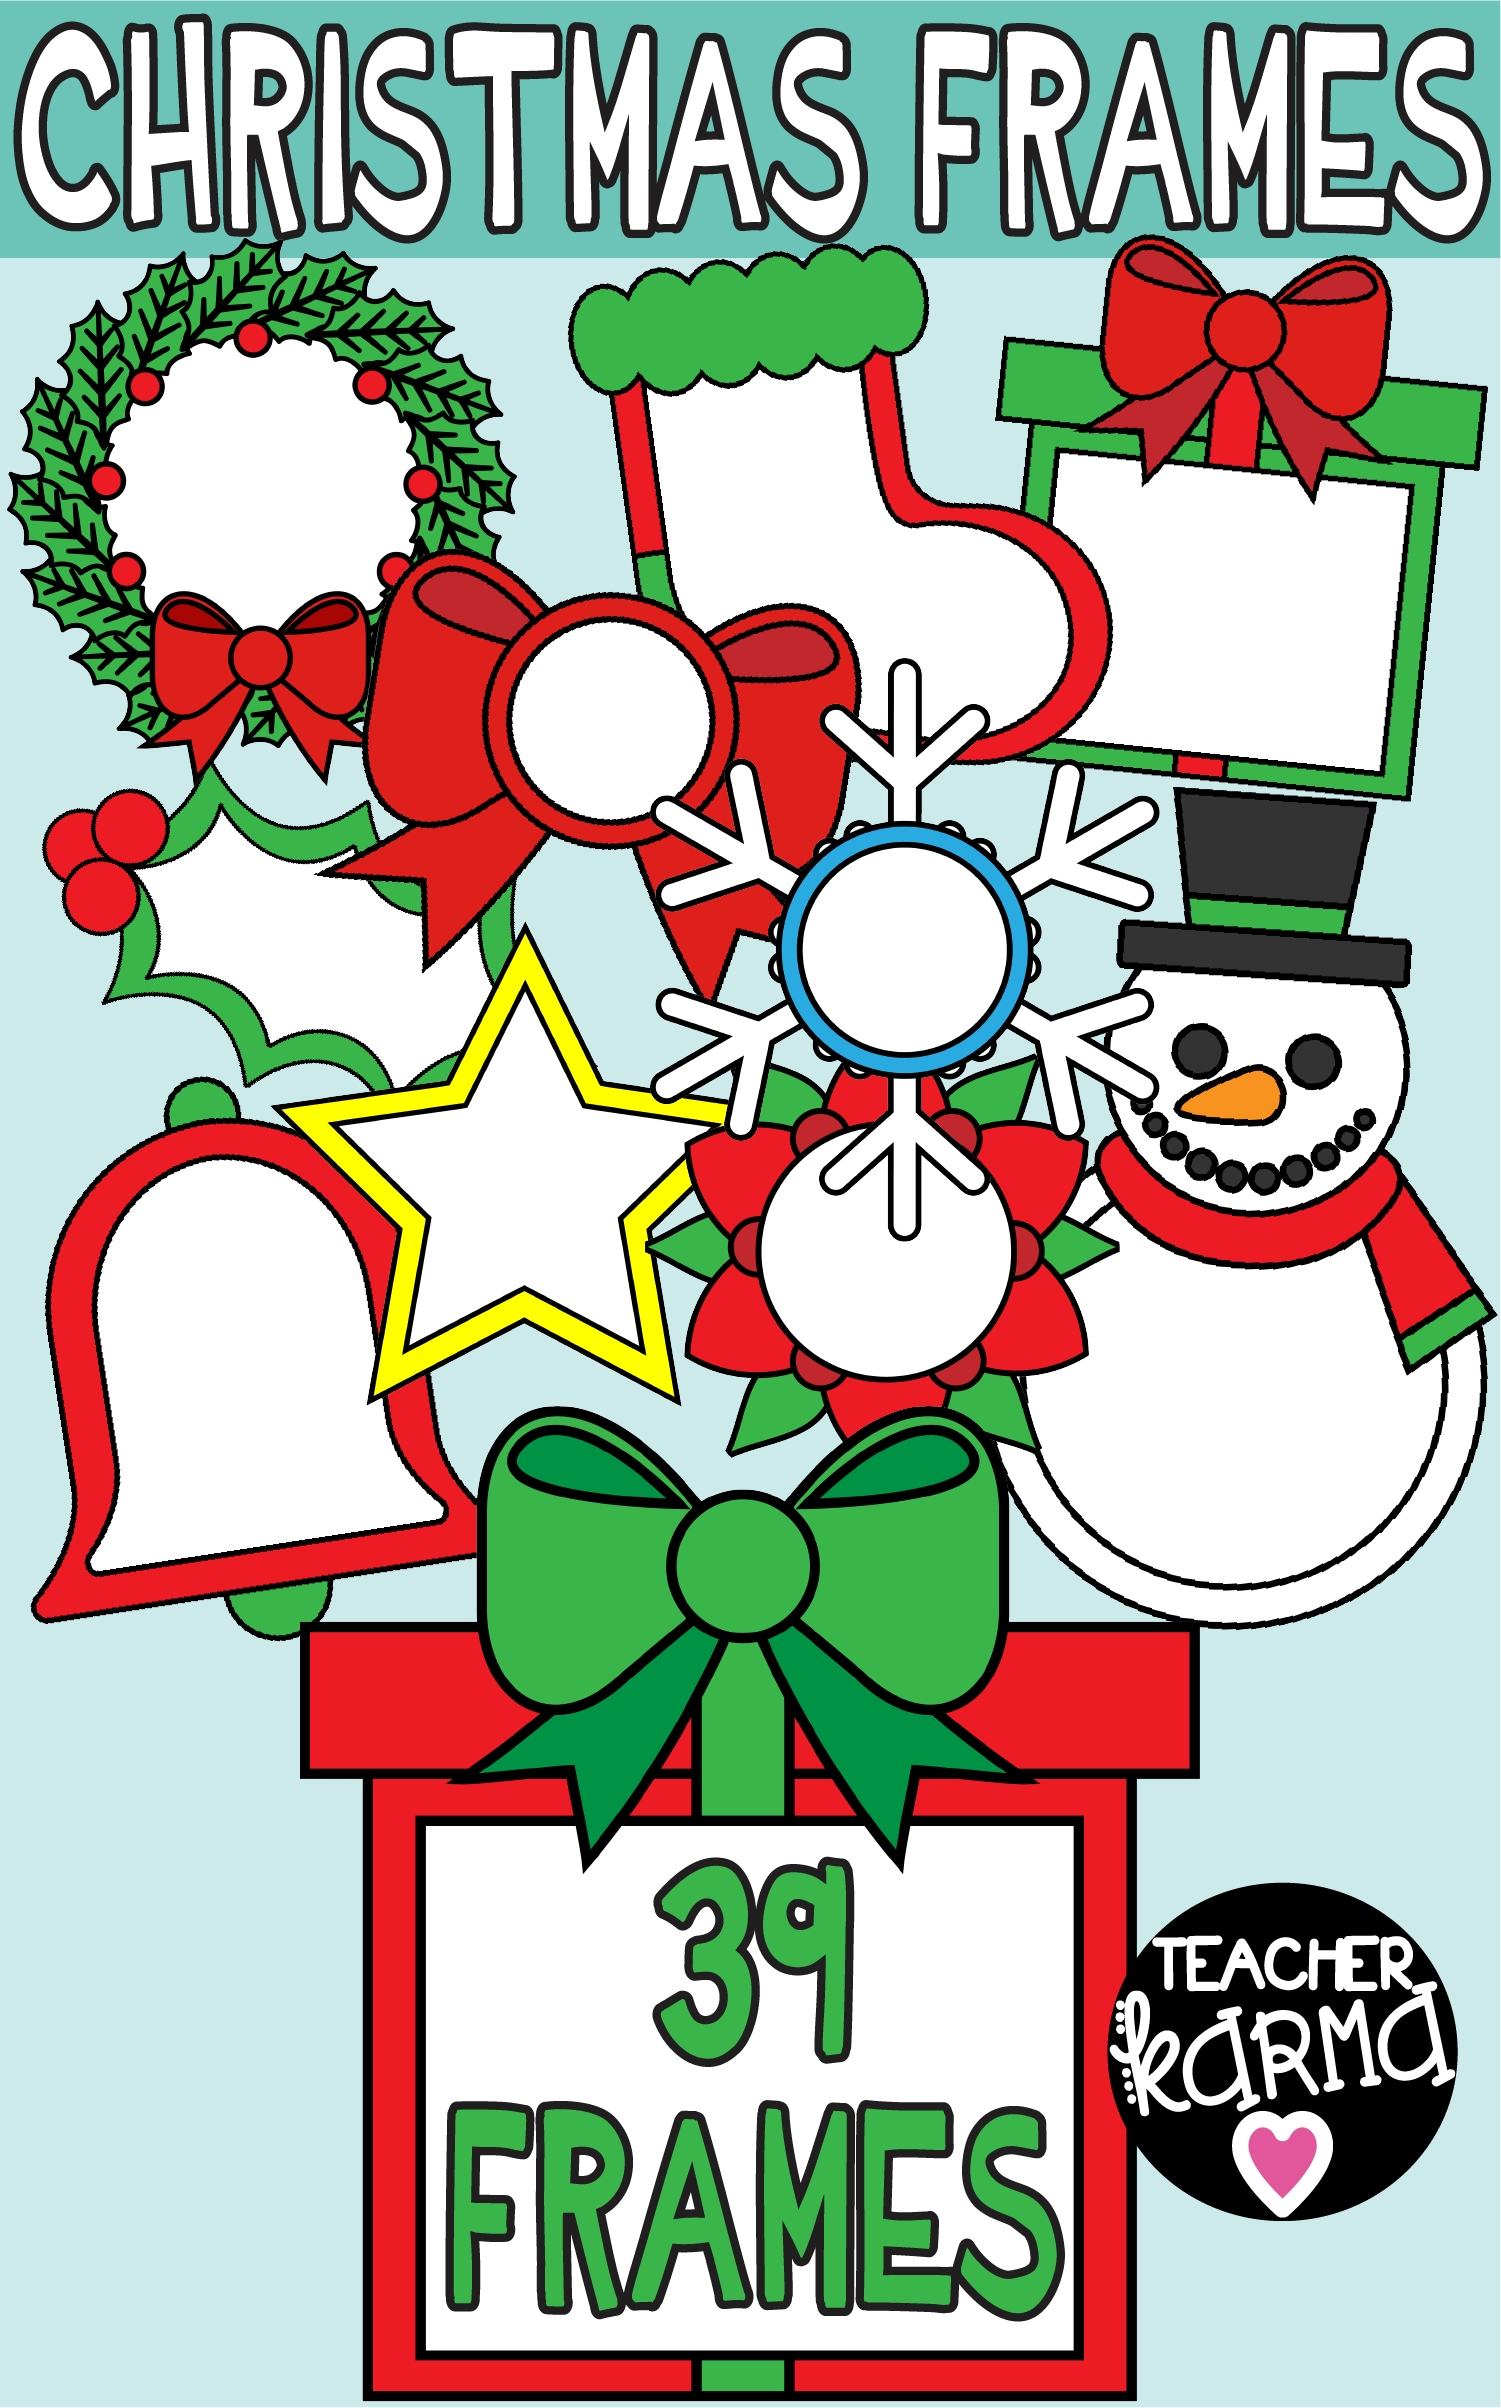 medium resolution of christmas frames clipart is perfect for your holiday resources these graphics work for tpt sellers